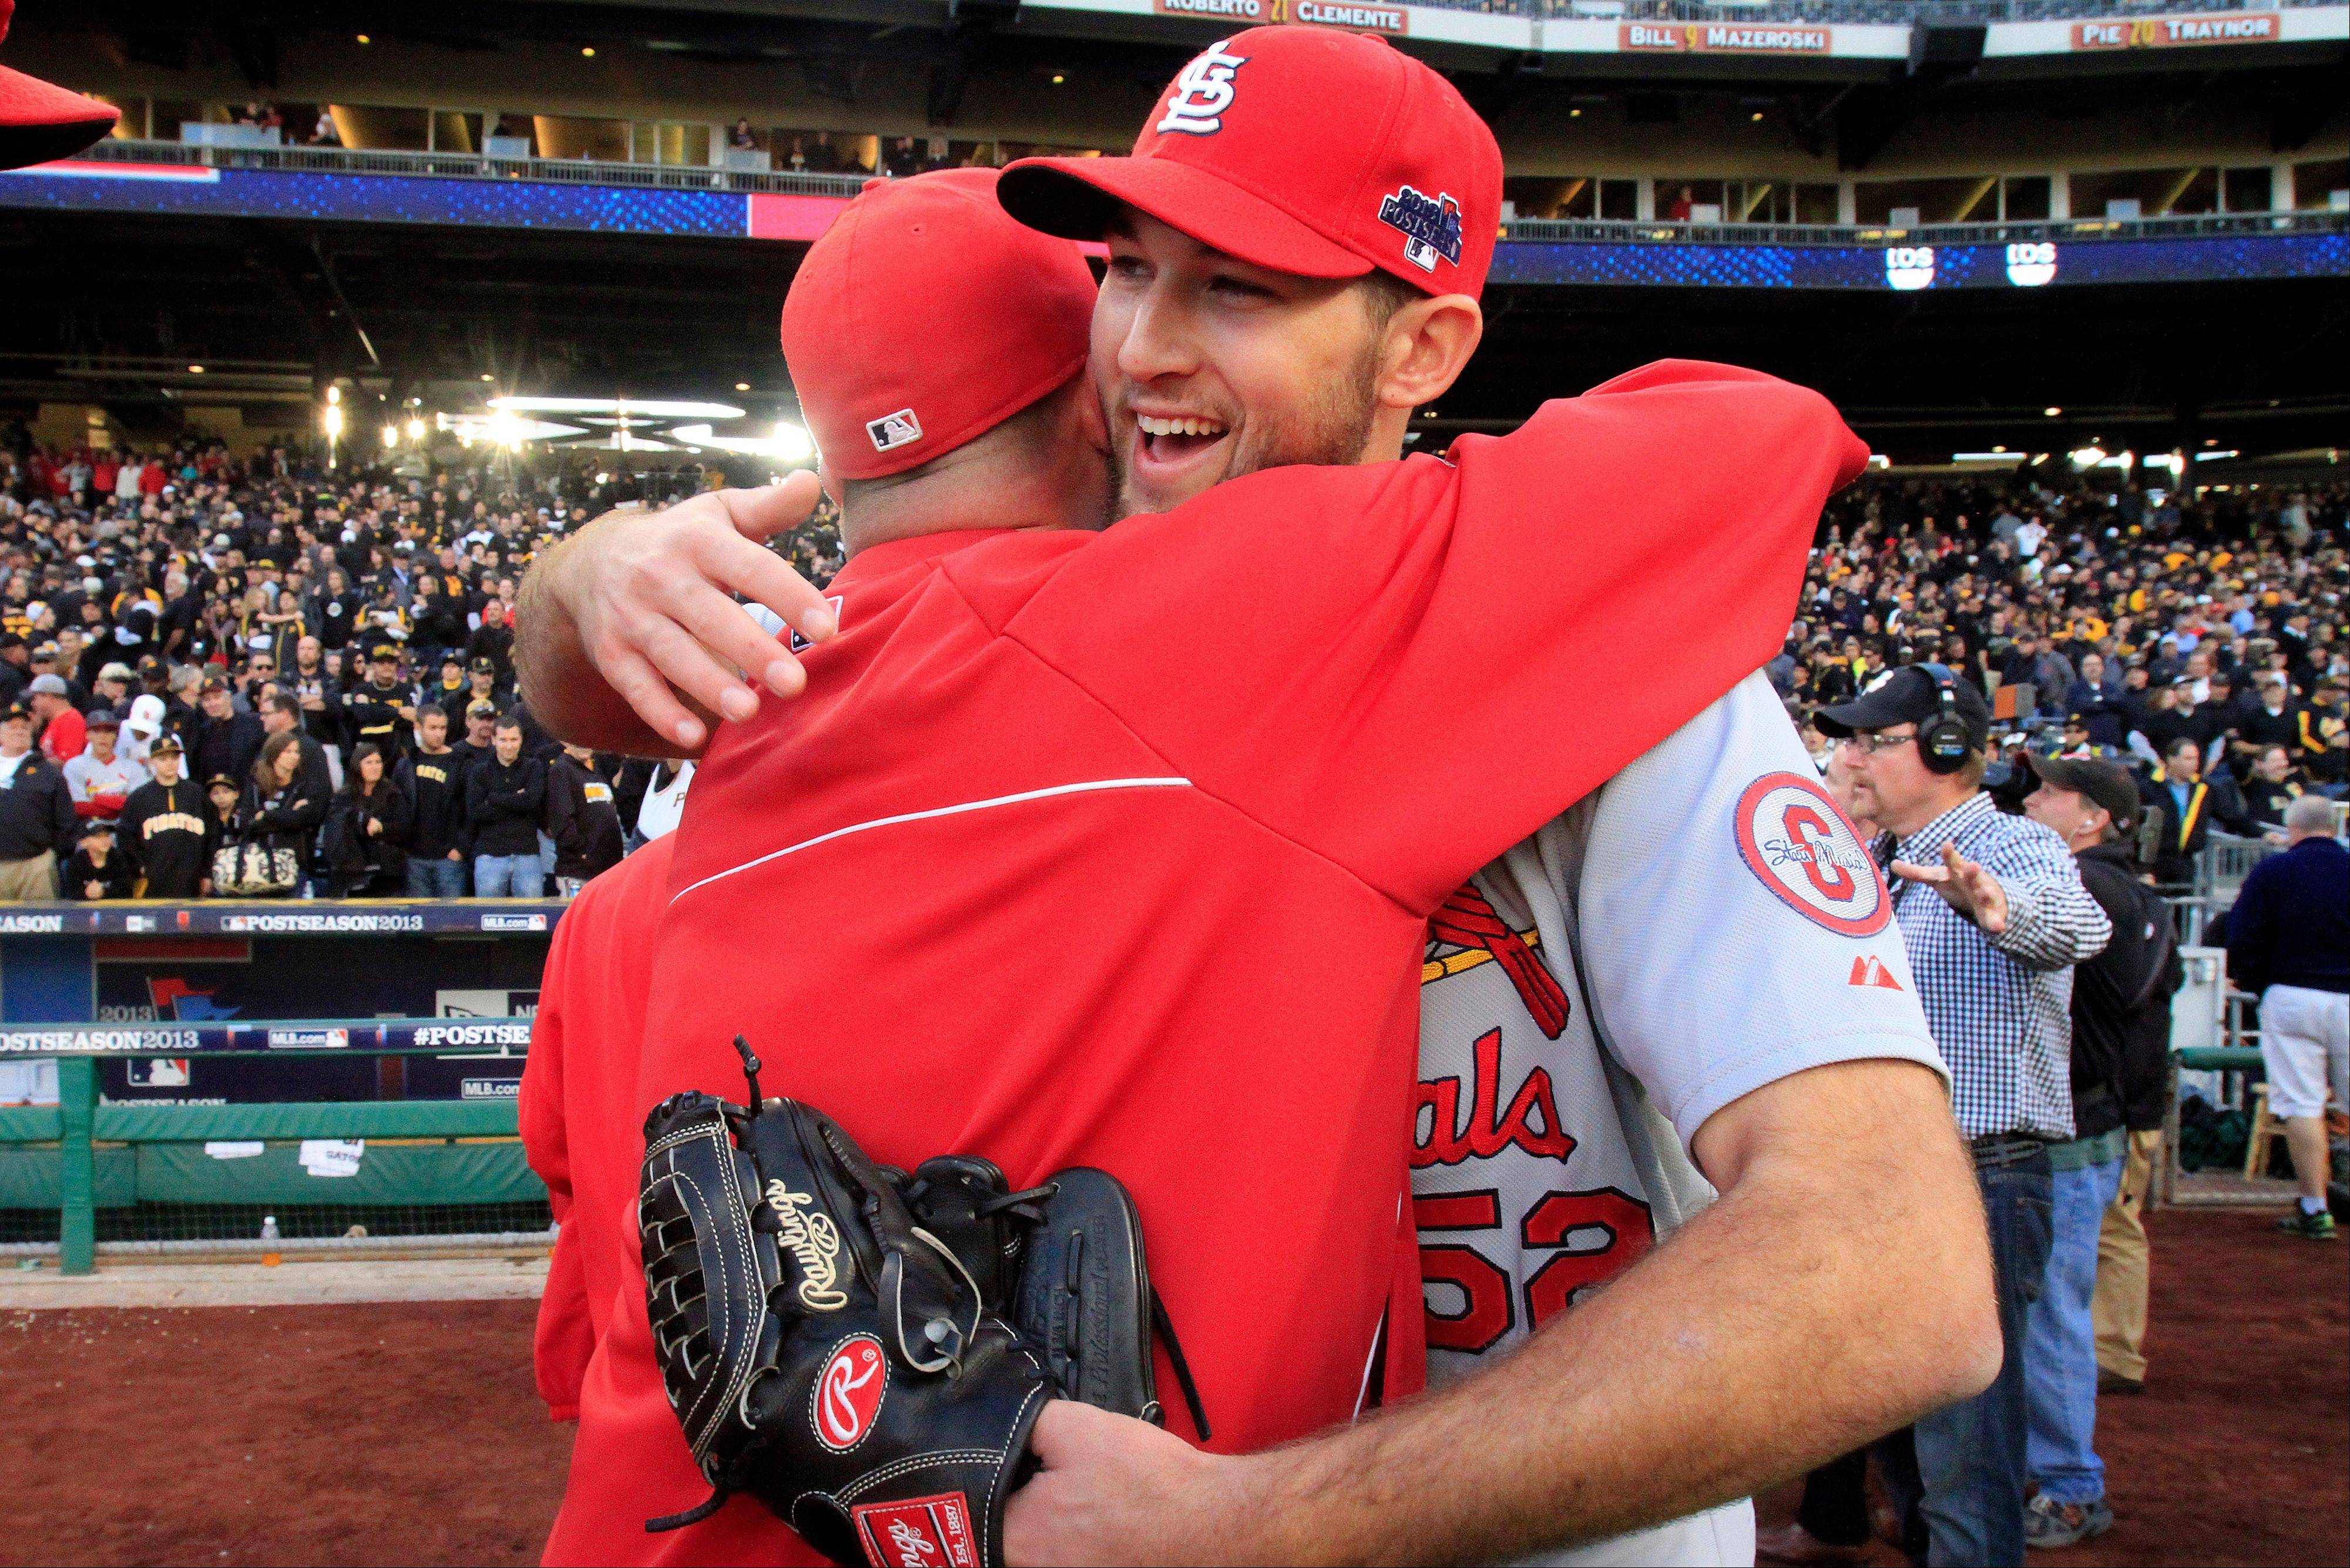 St. Louis Cardinals pitcher Michael Wacha, right, celebrates with teammates after a 2-1 win over the Pittsburgh Pirates in Game 4 of a National League Division Series on Monday in Pittsburgh.